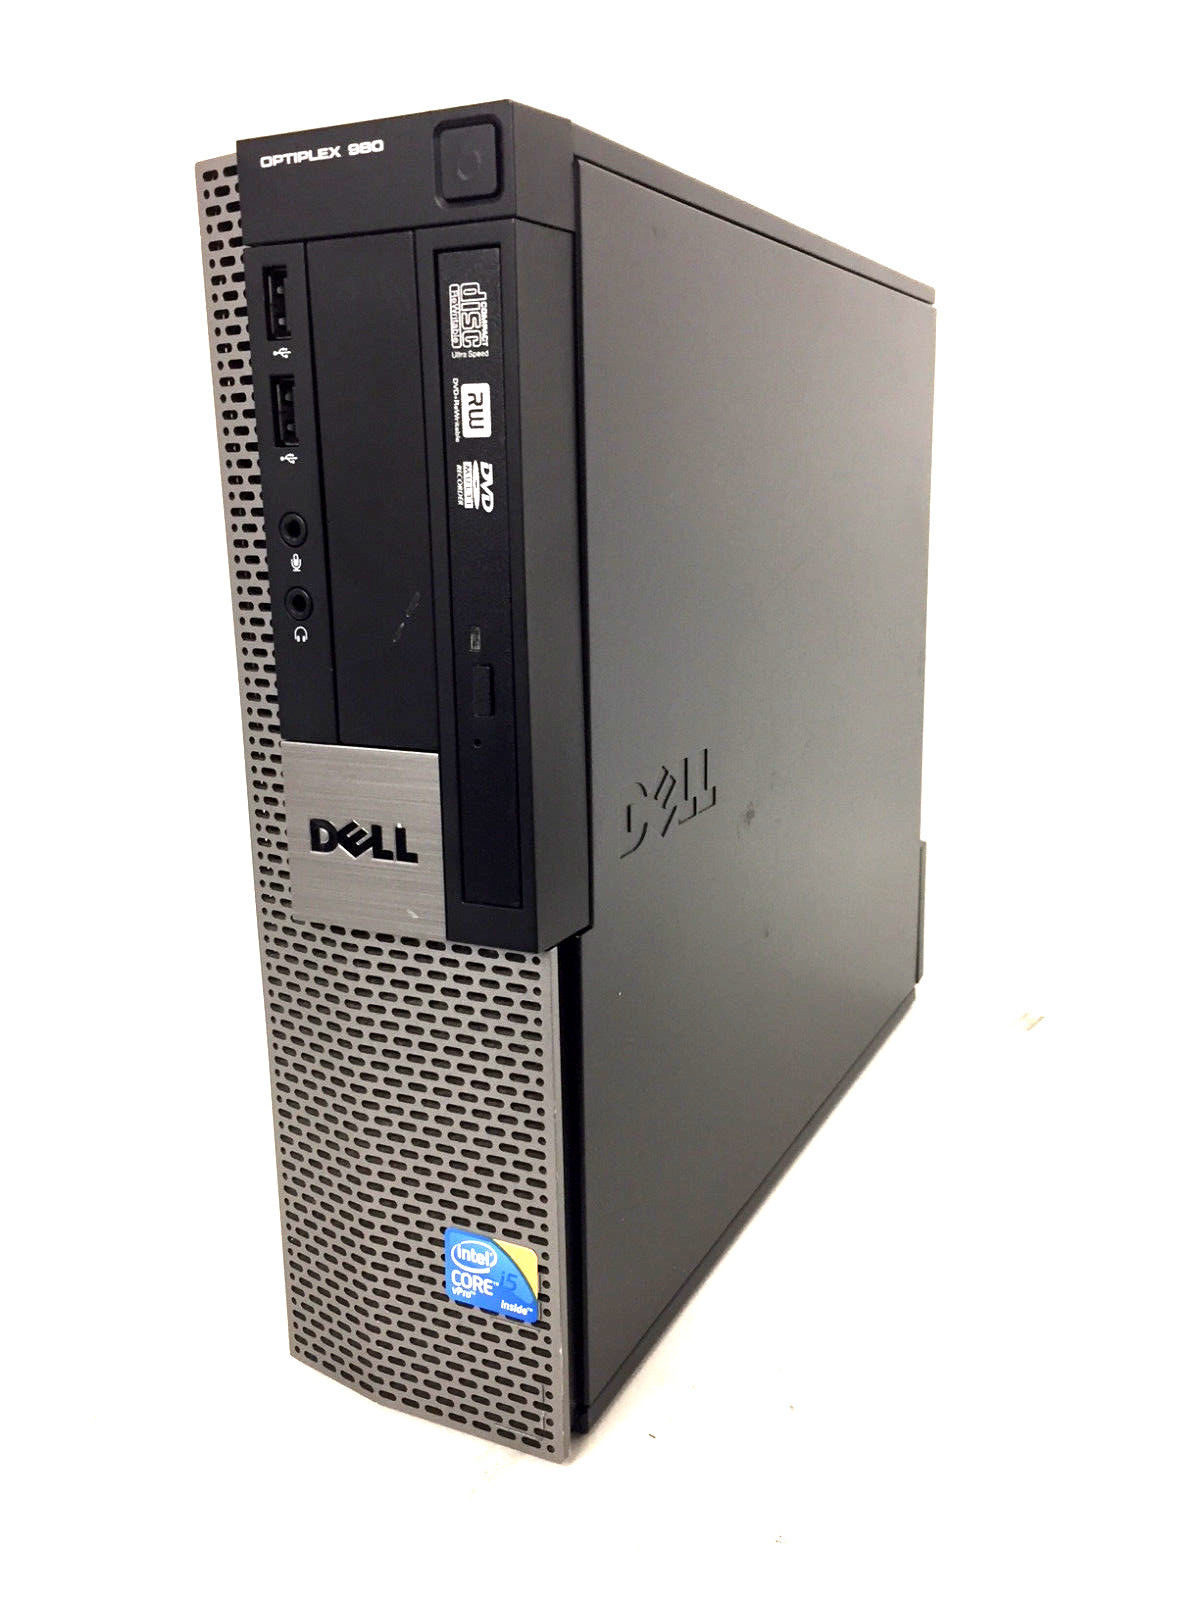 Dell-Optiplex-980 - 133280